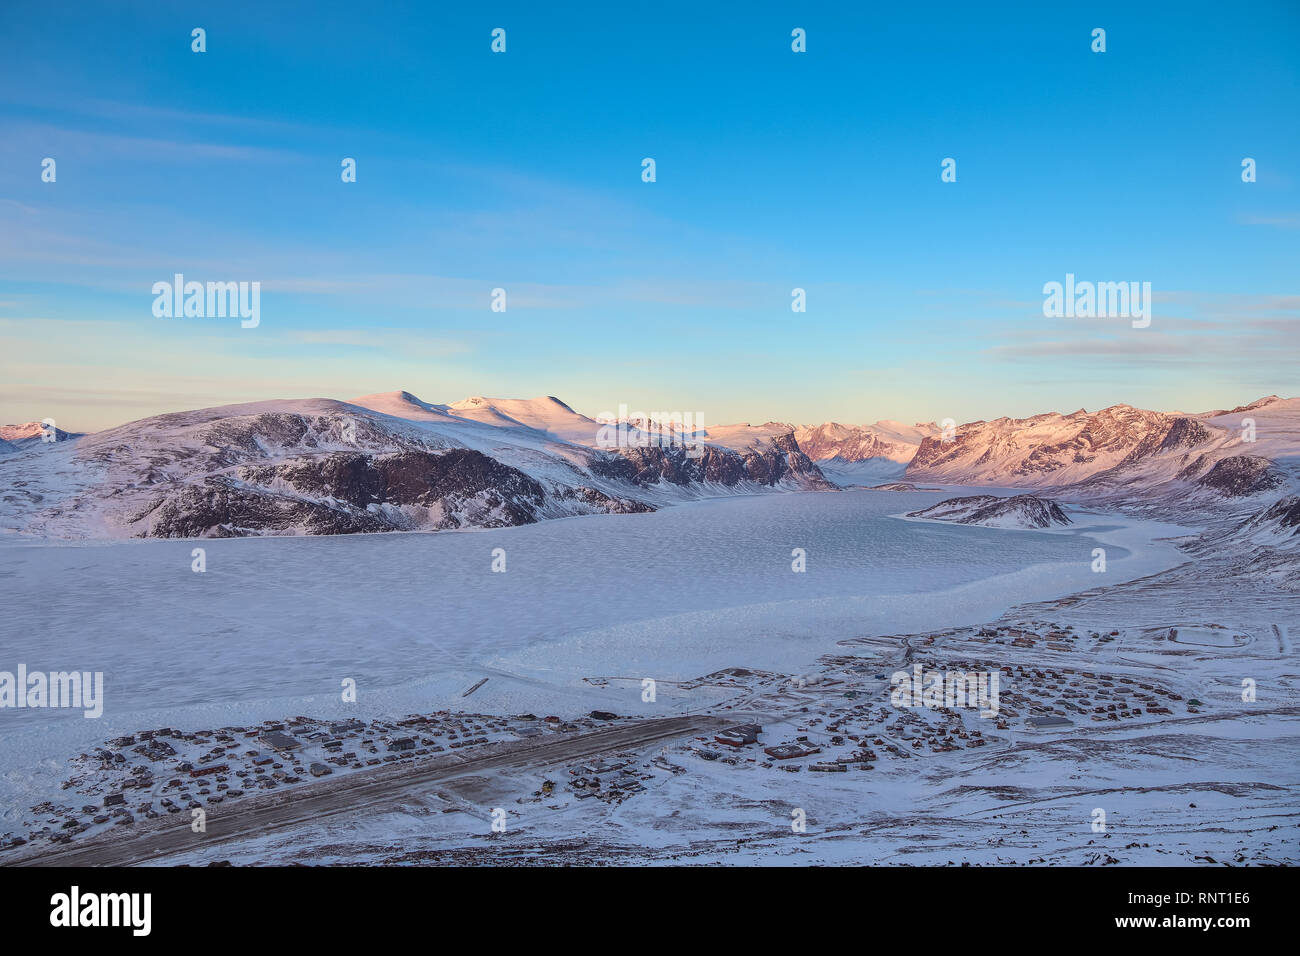 Overlooking the town of Pangnirting. This is the entire town visible soutth (left) to north during sunset in winter. - Stock Image